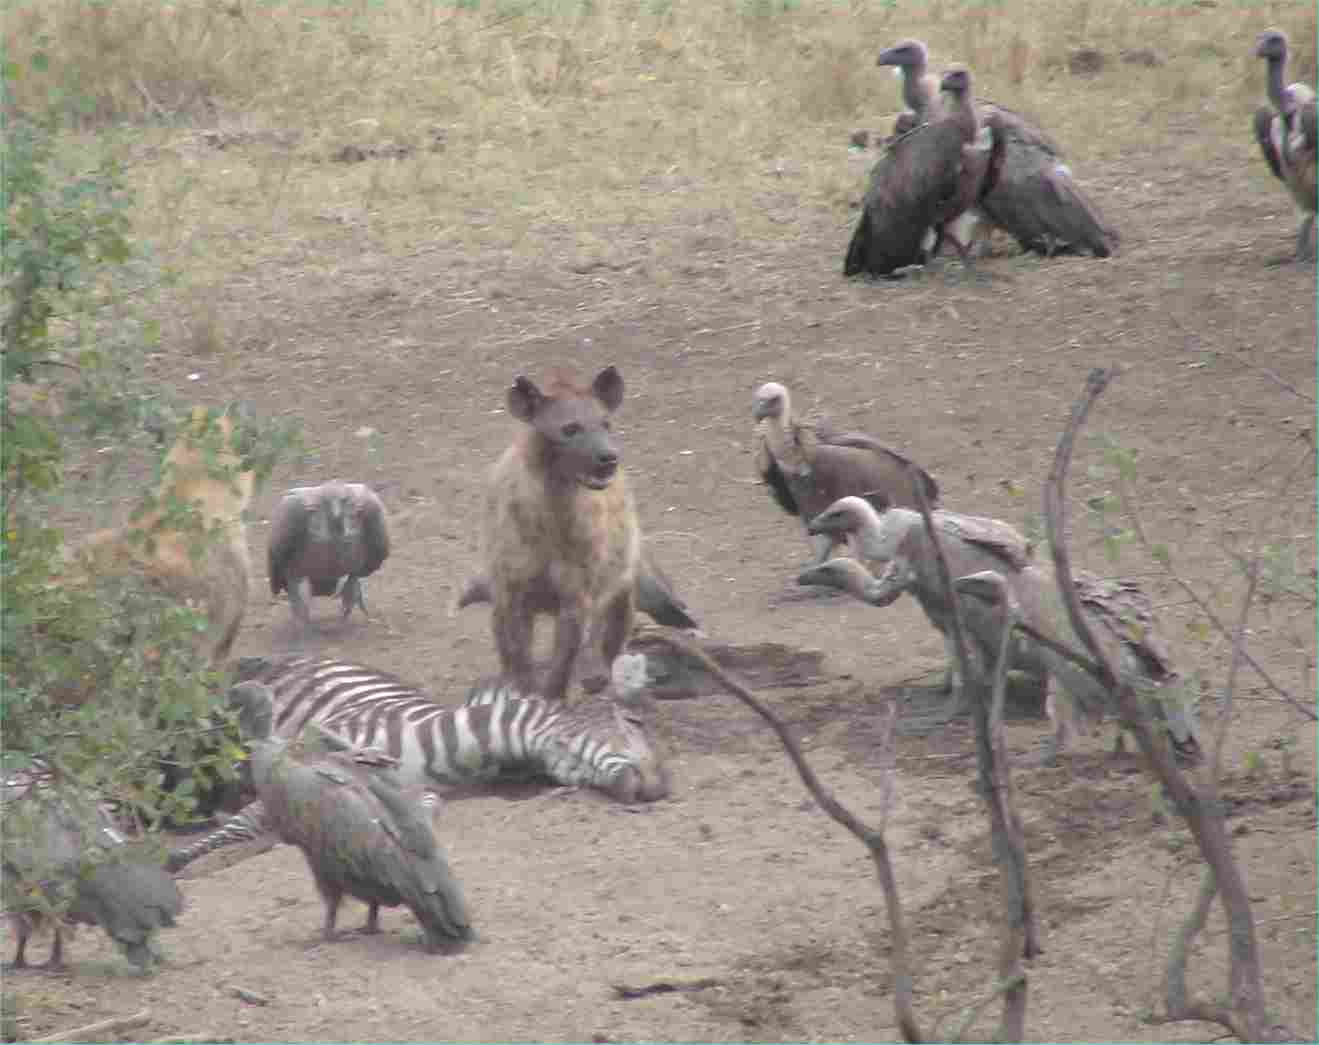 The hyenas eat first, then the vultures.  Photo by FG, Dec. 2005.